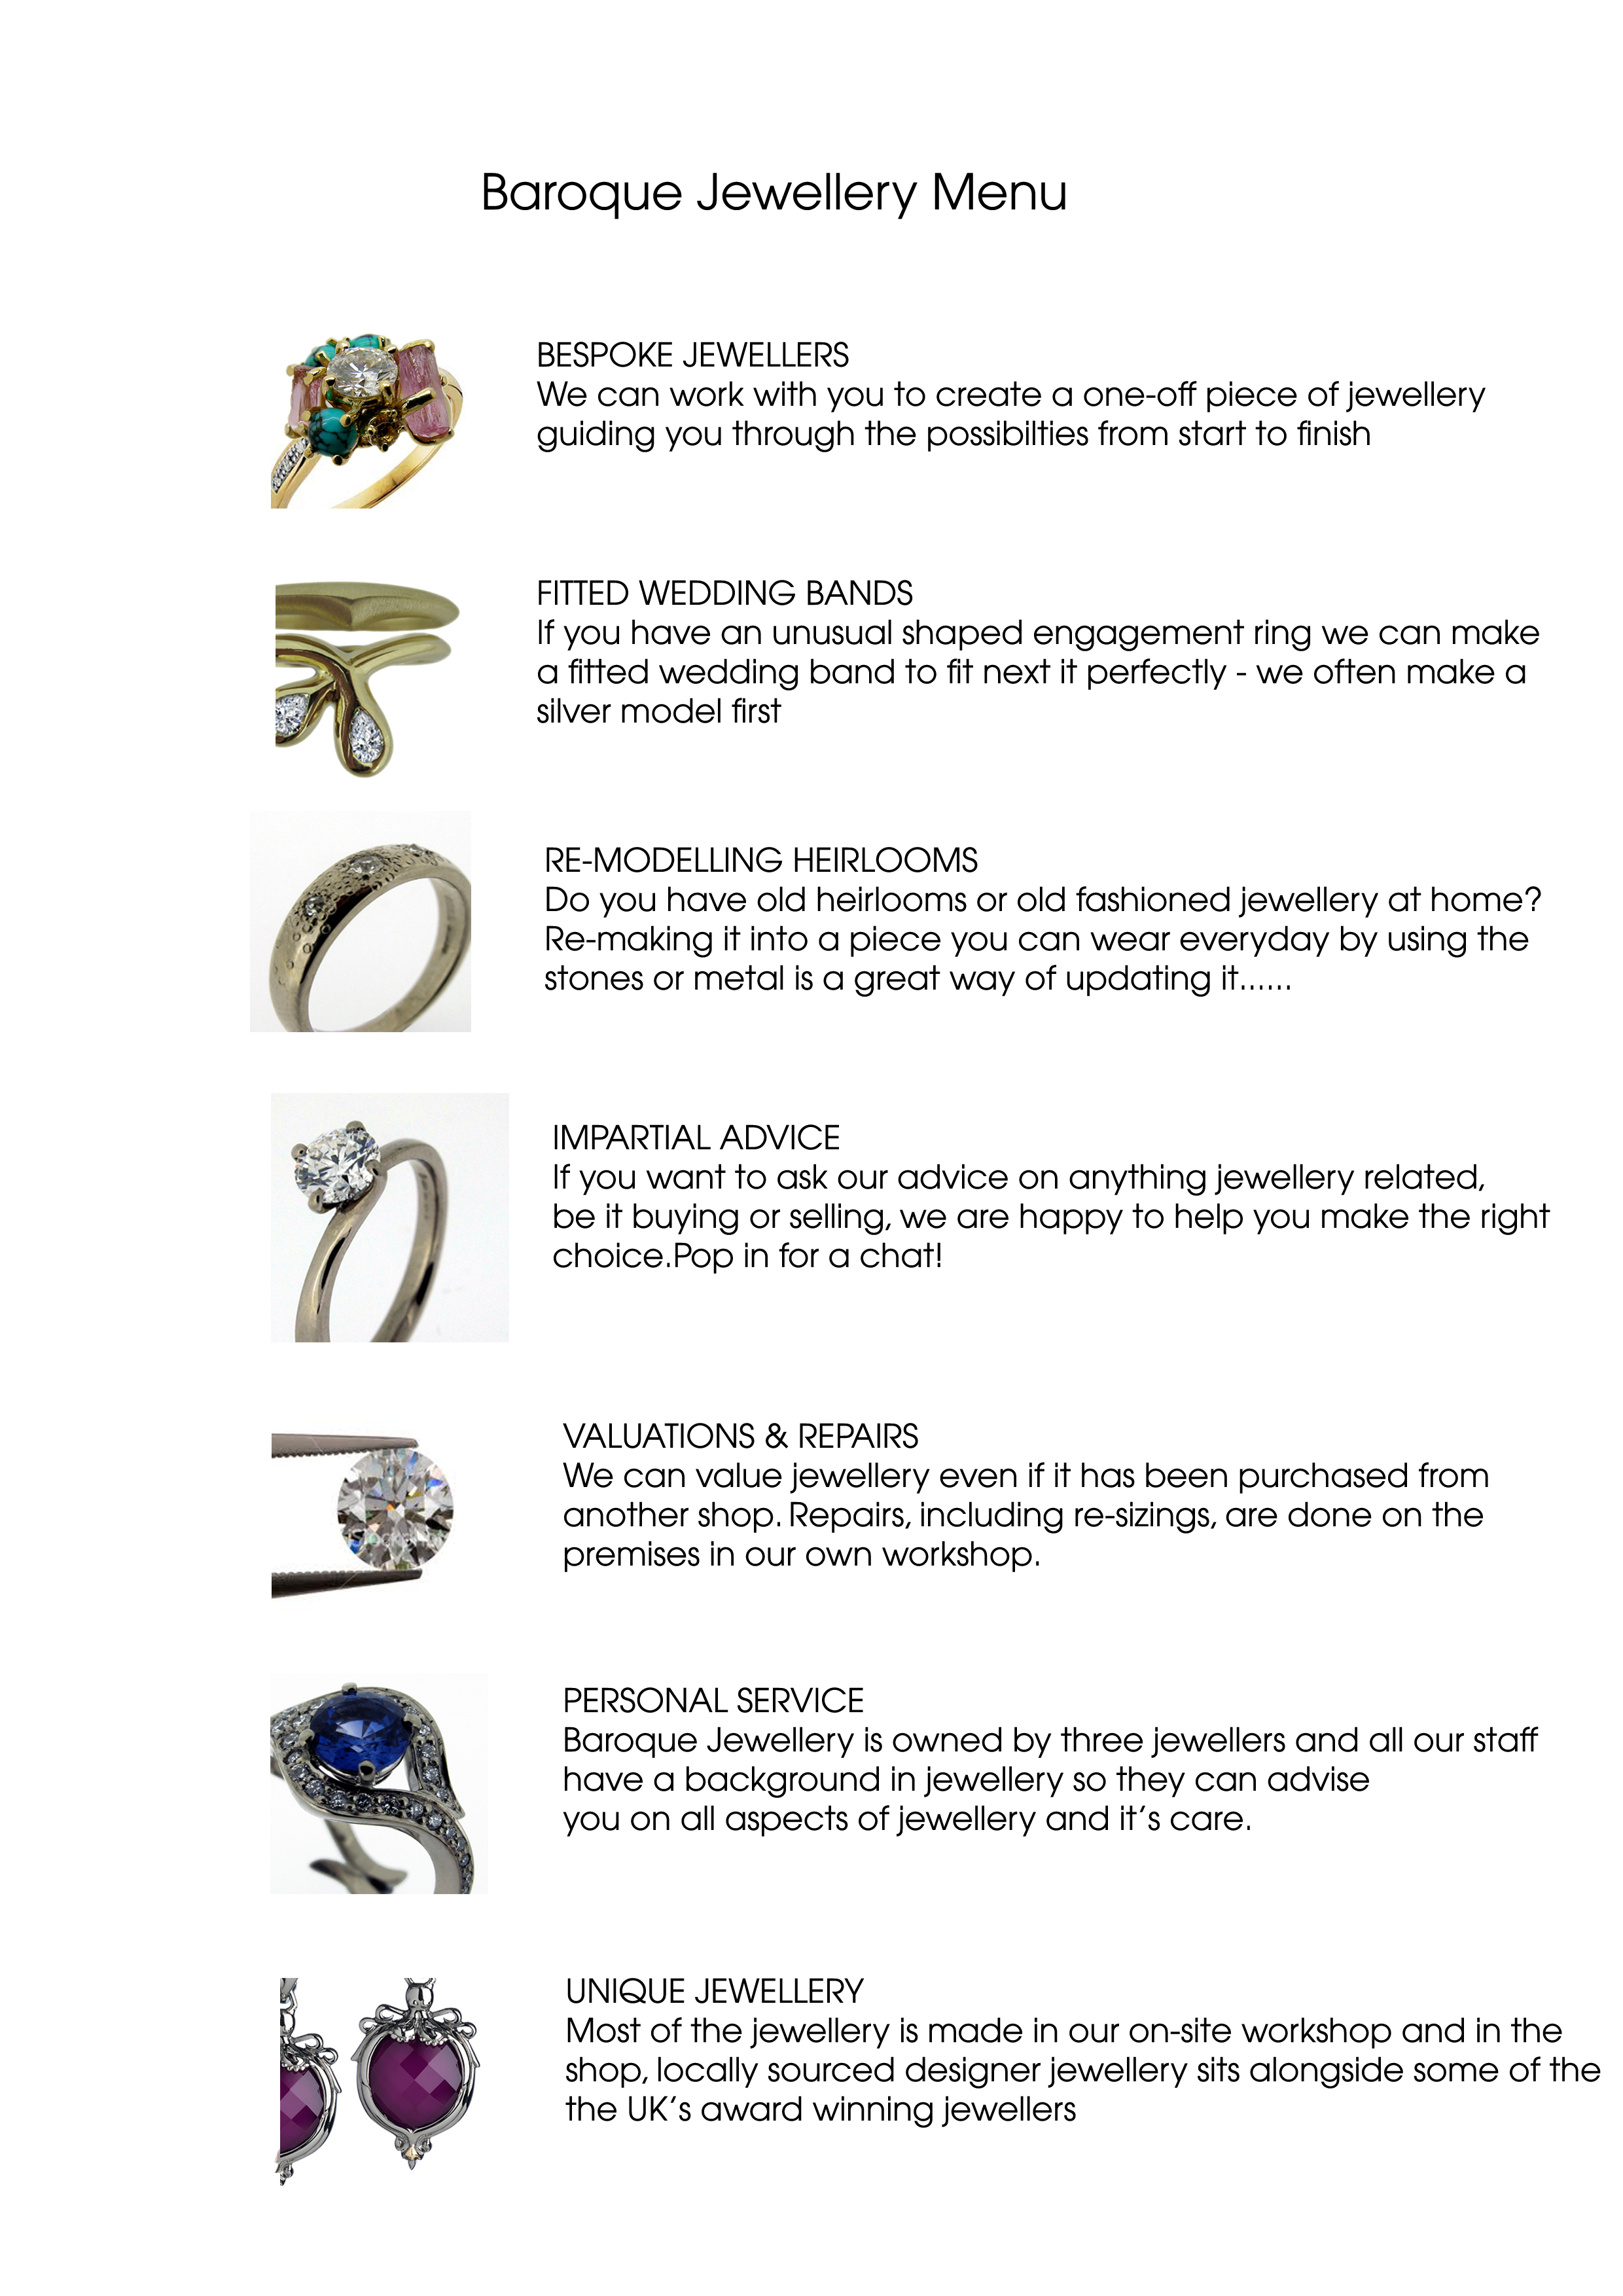 Baroque Bespoke Jewellery's Menu of services that we offer